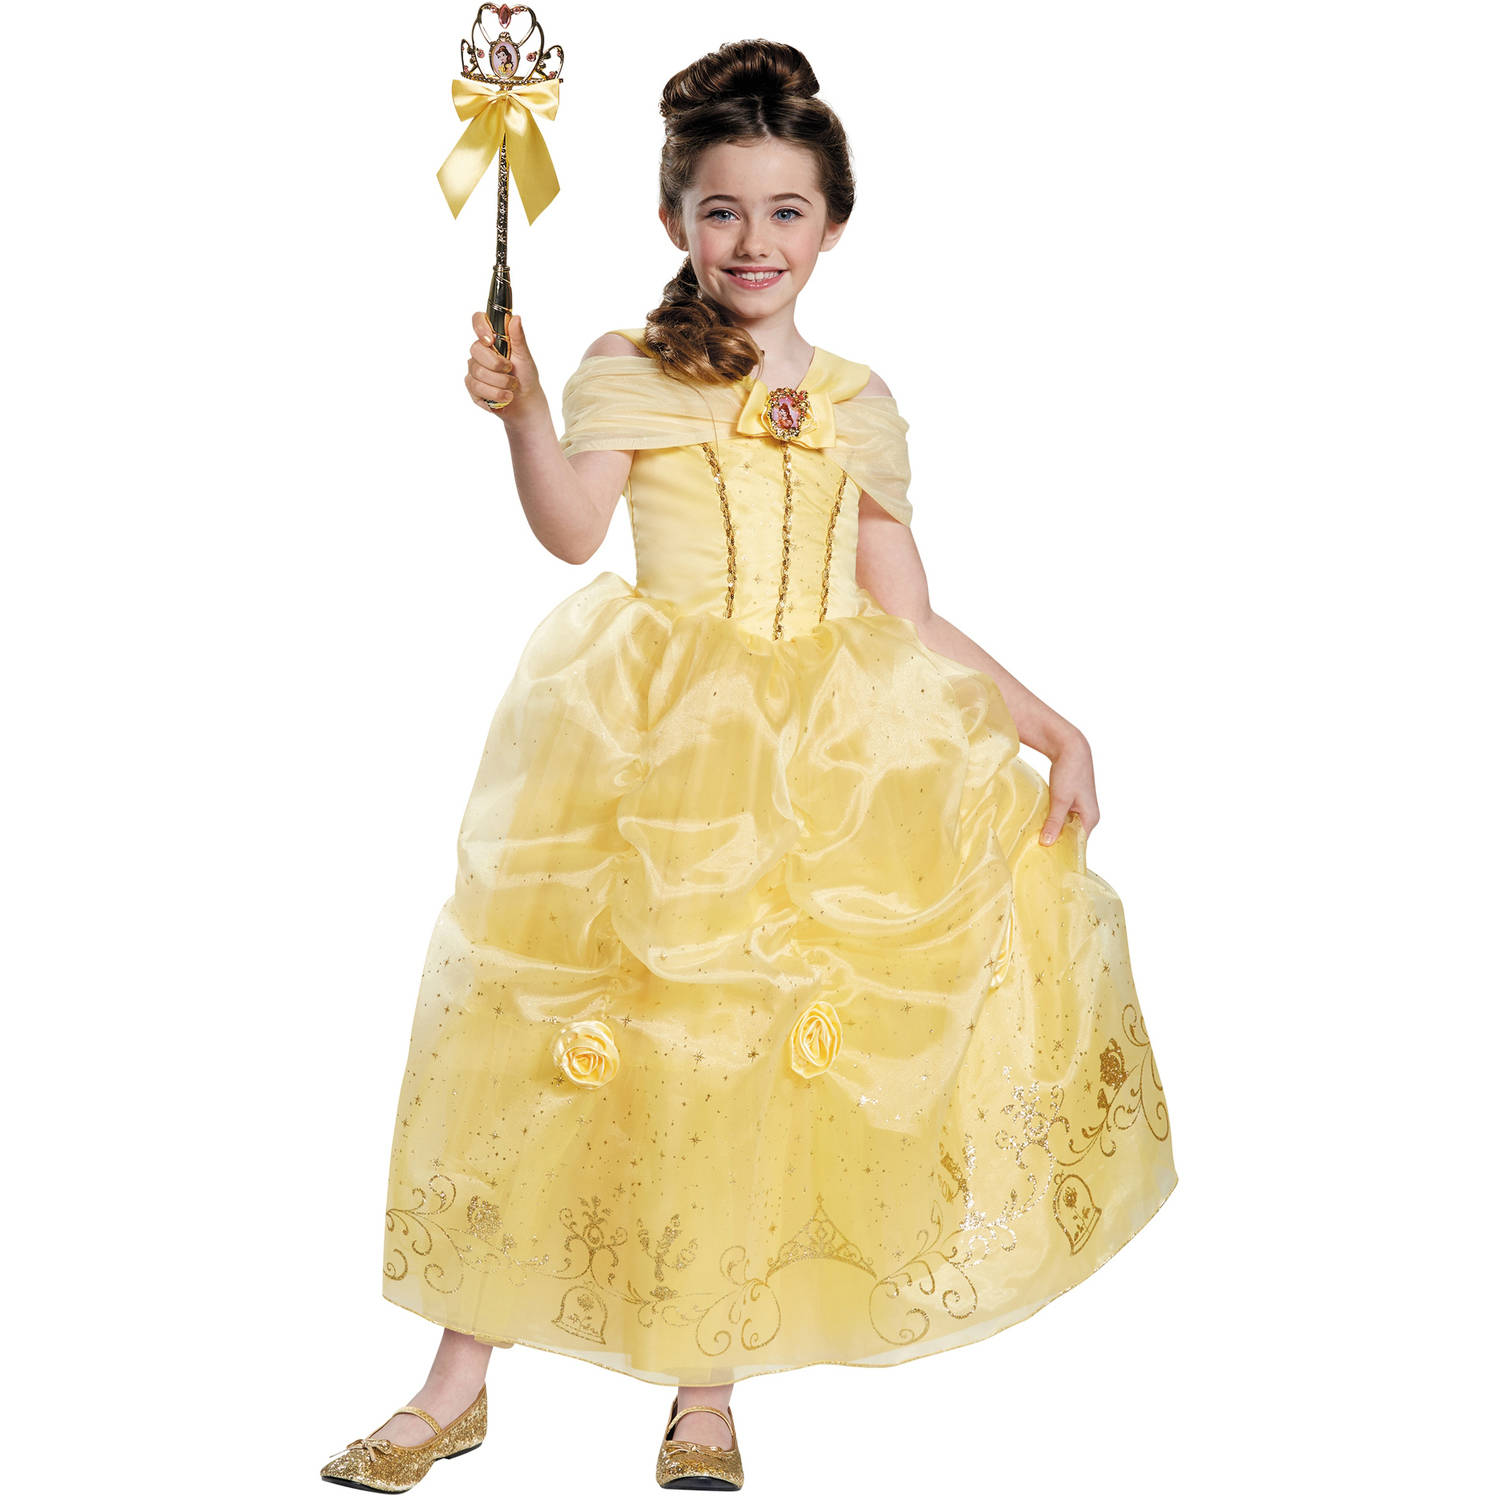 Belle Prestige Girls Child Halloween Costume